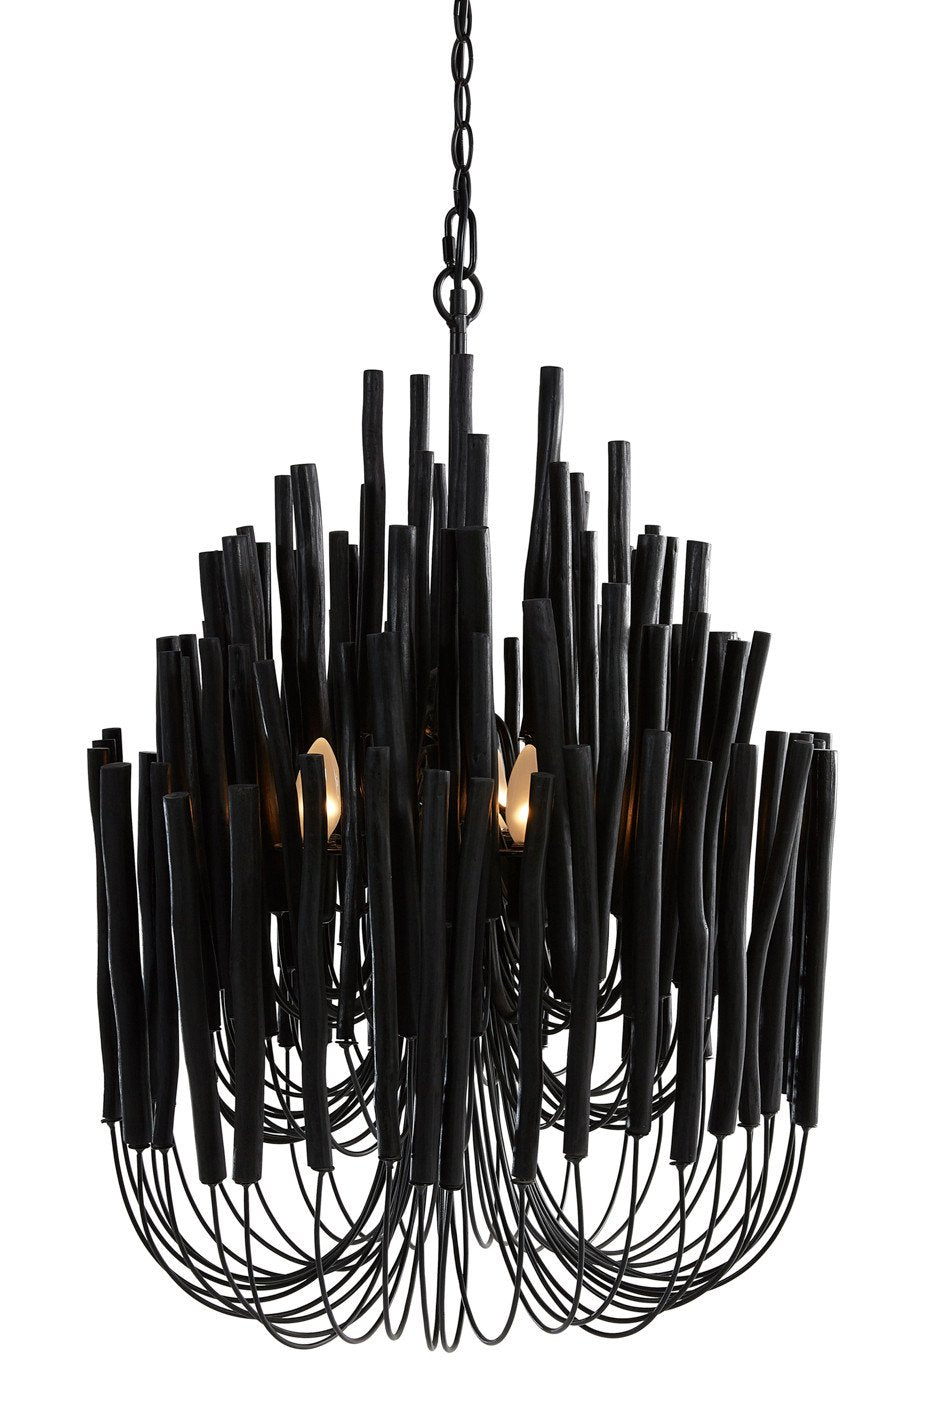 Wooden Candle Stick Lamp in Black Interior Collections